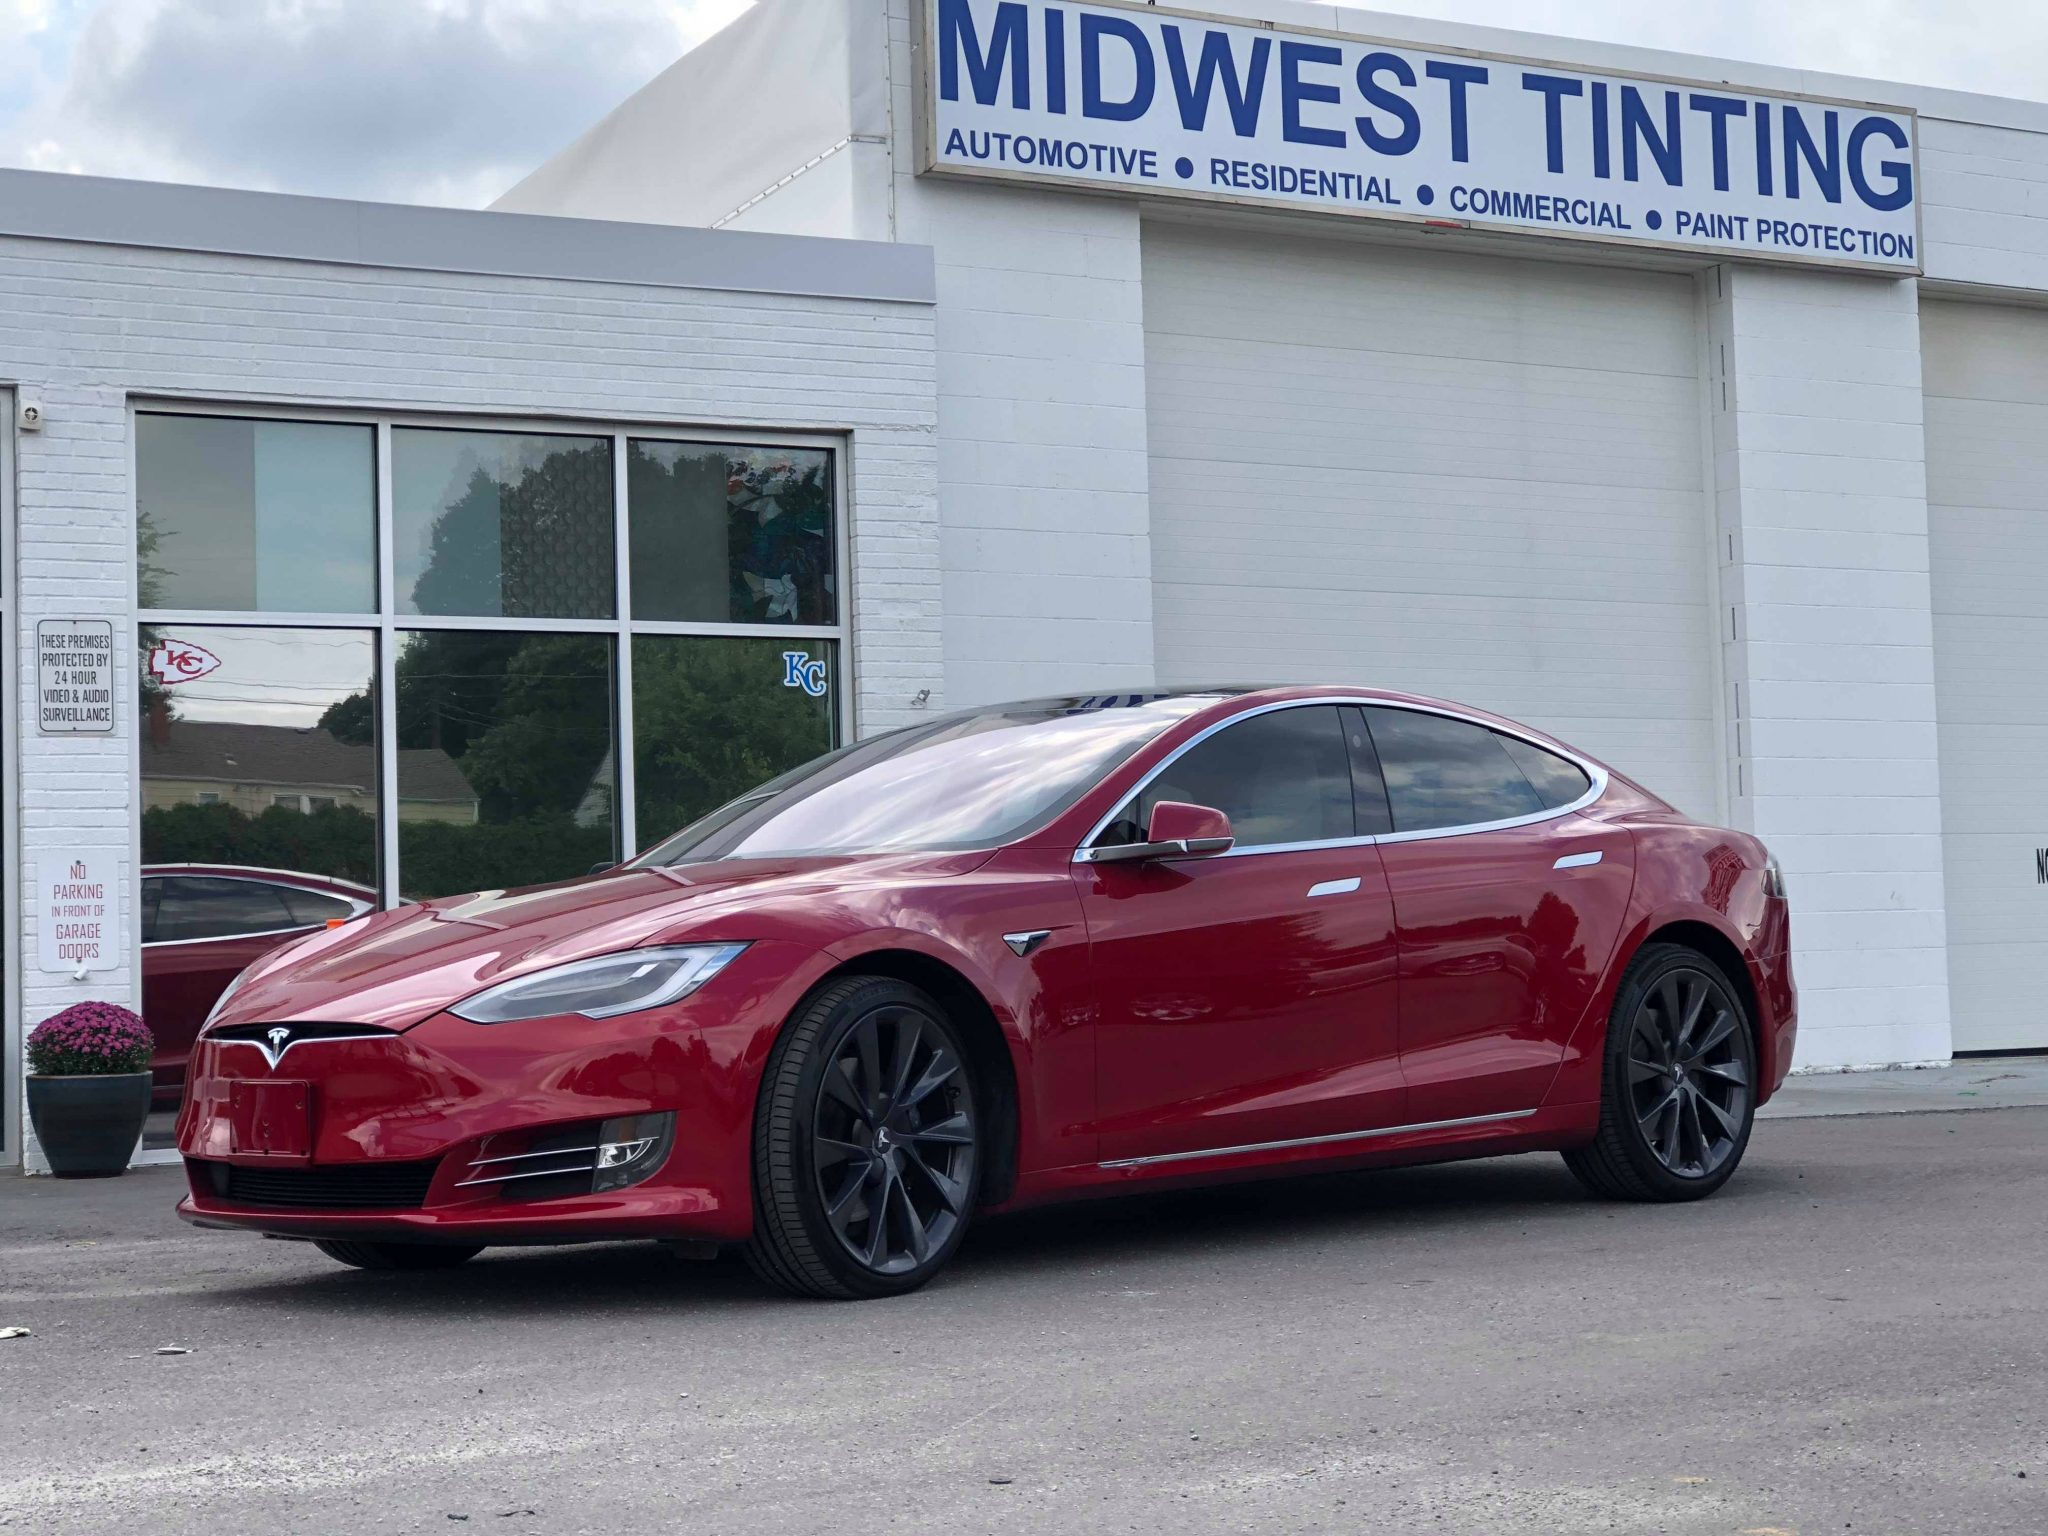 Midwest Tinting Your Source For Tesla Model Upgrades In